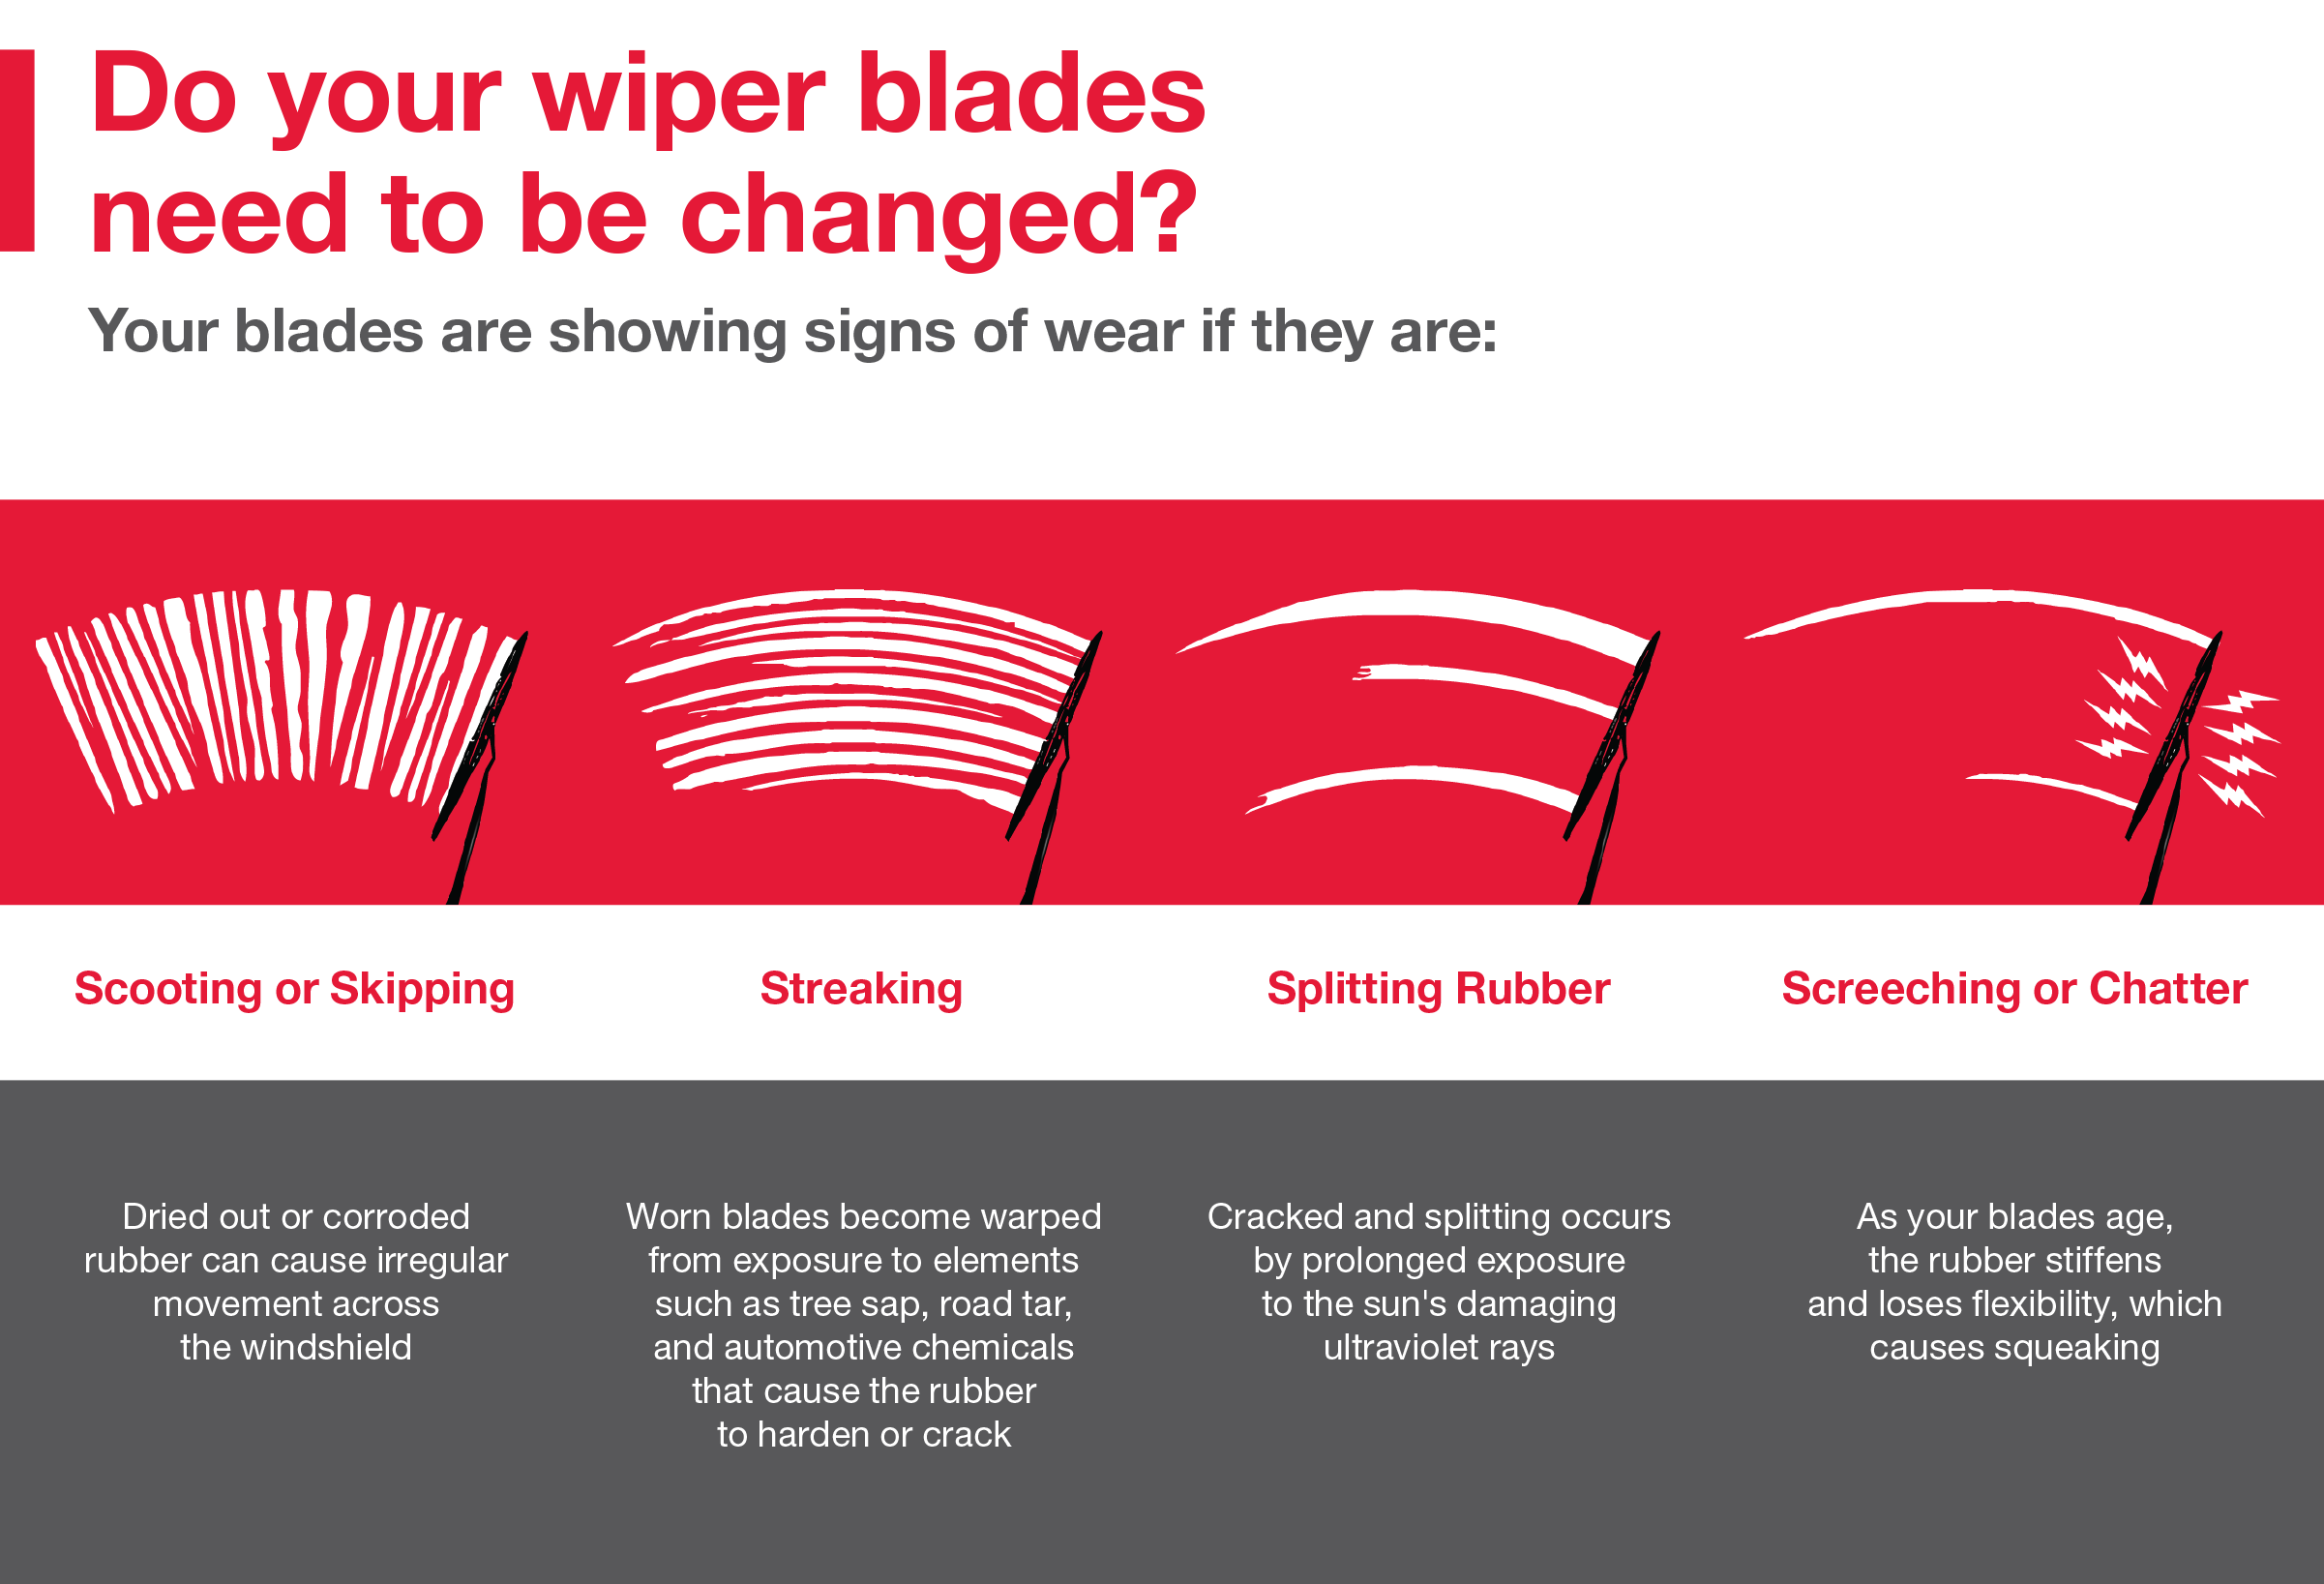 Do your wiper blades need to be changed? Call your local dealer for more info: 304-244-3519